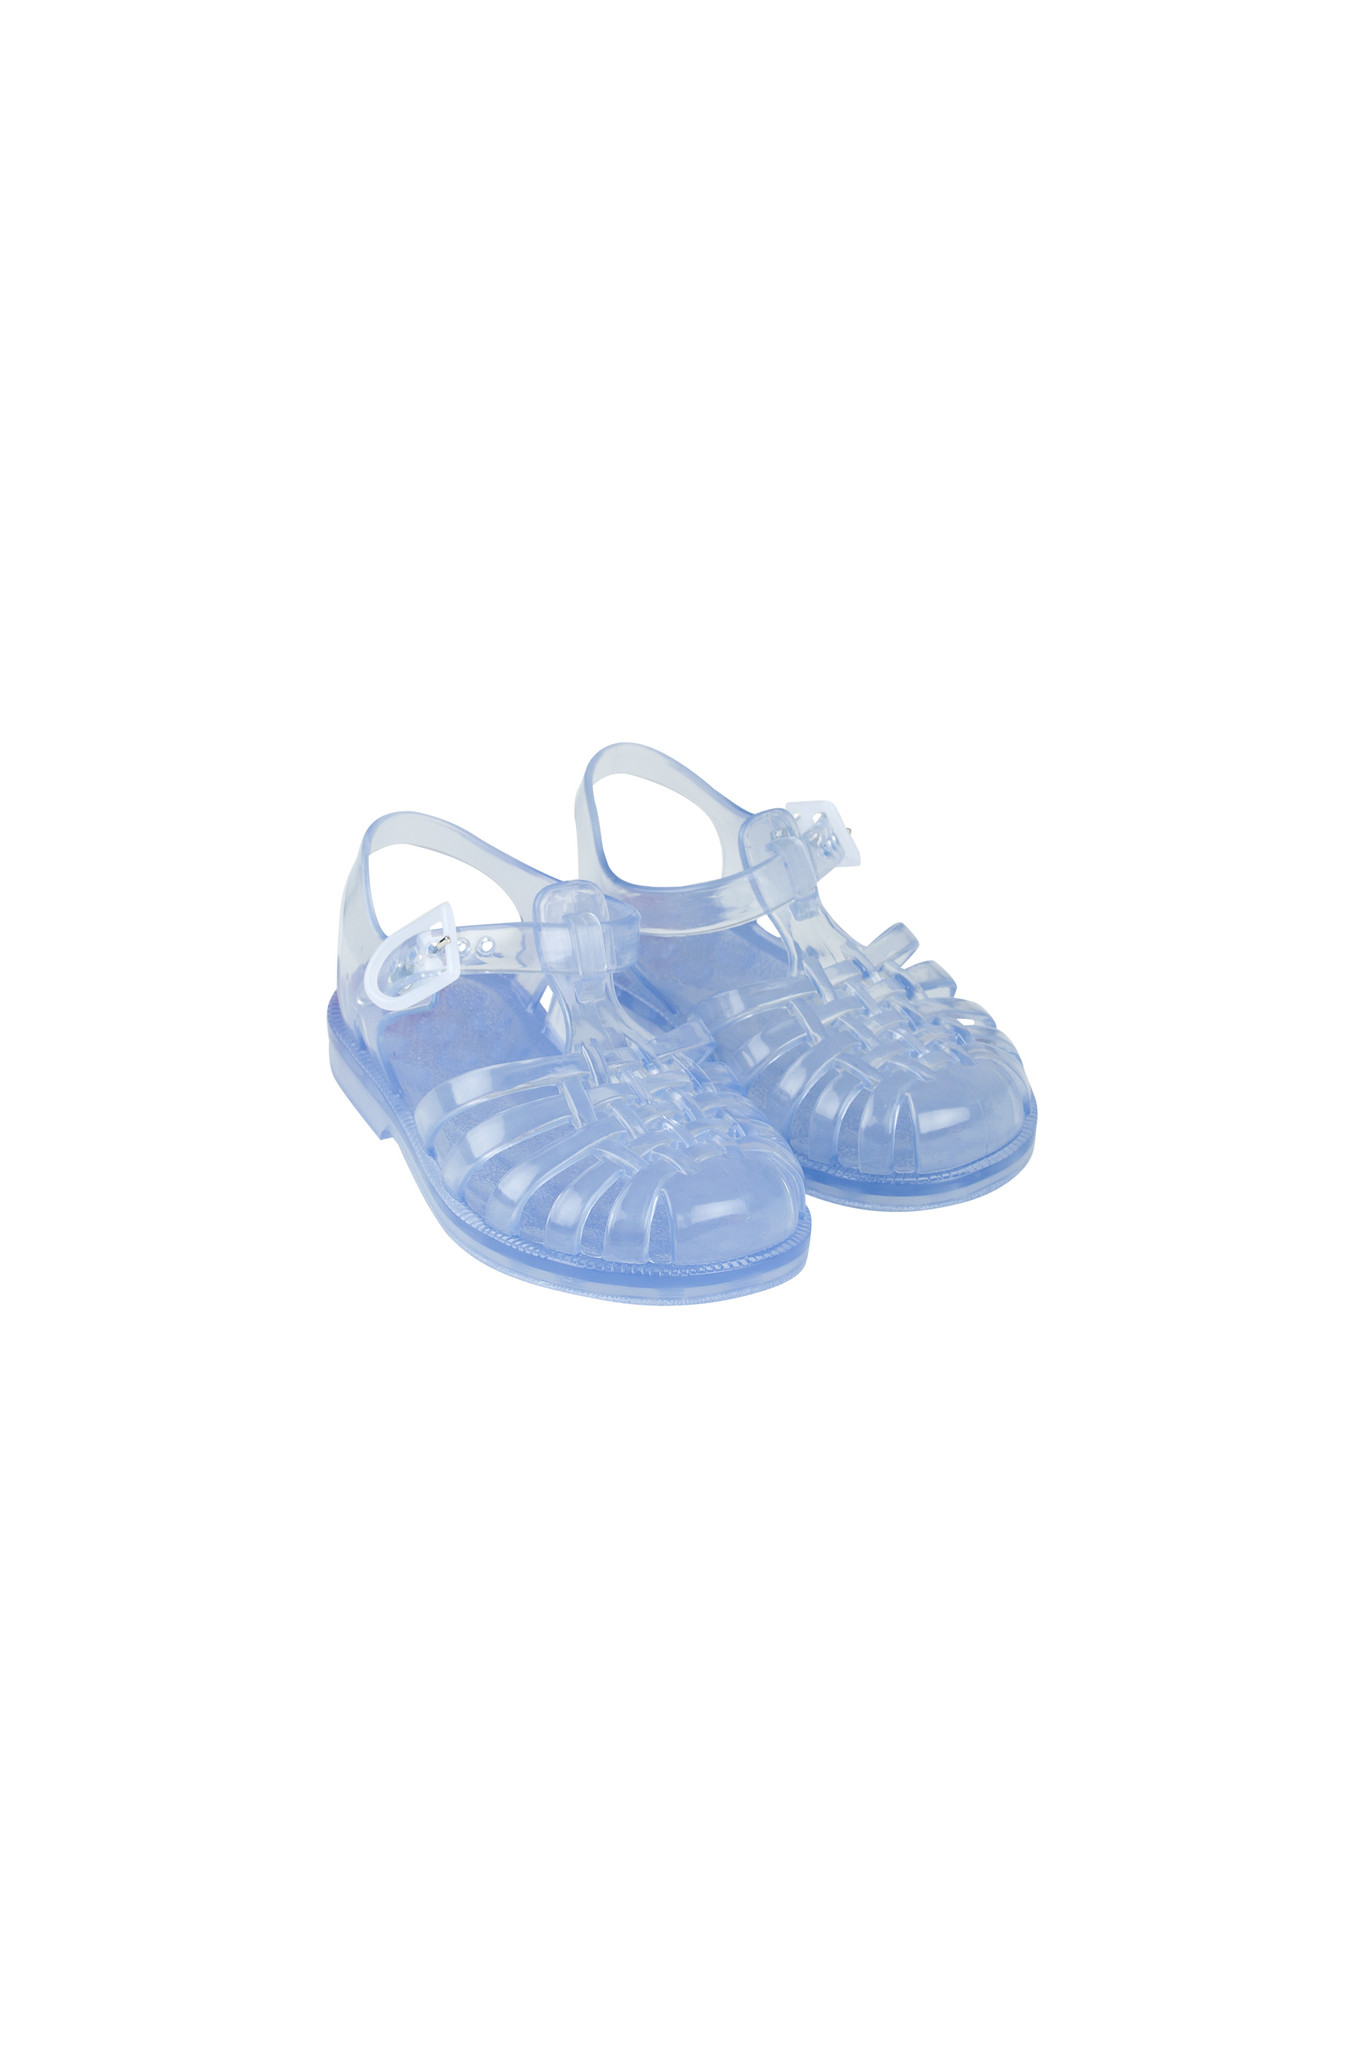 JELLY SANDALS - Transparent-1